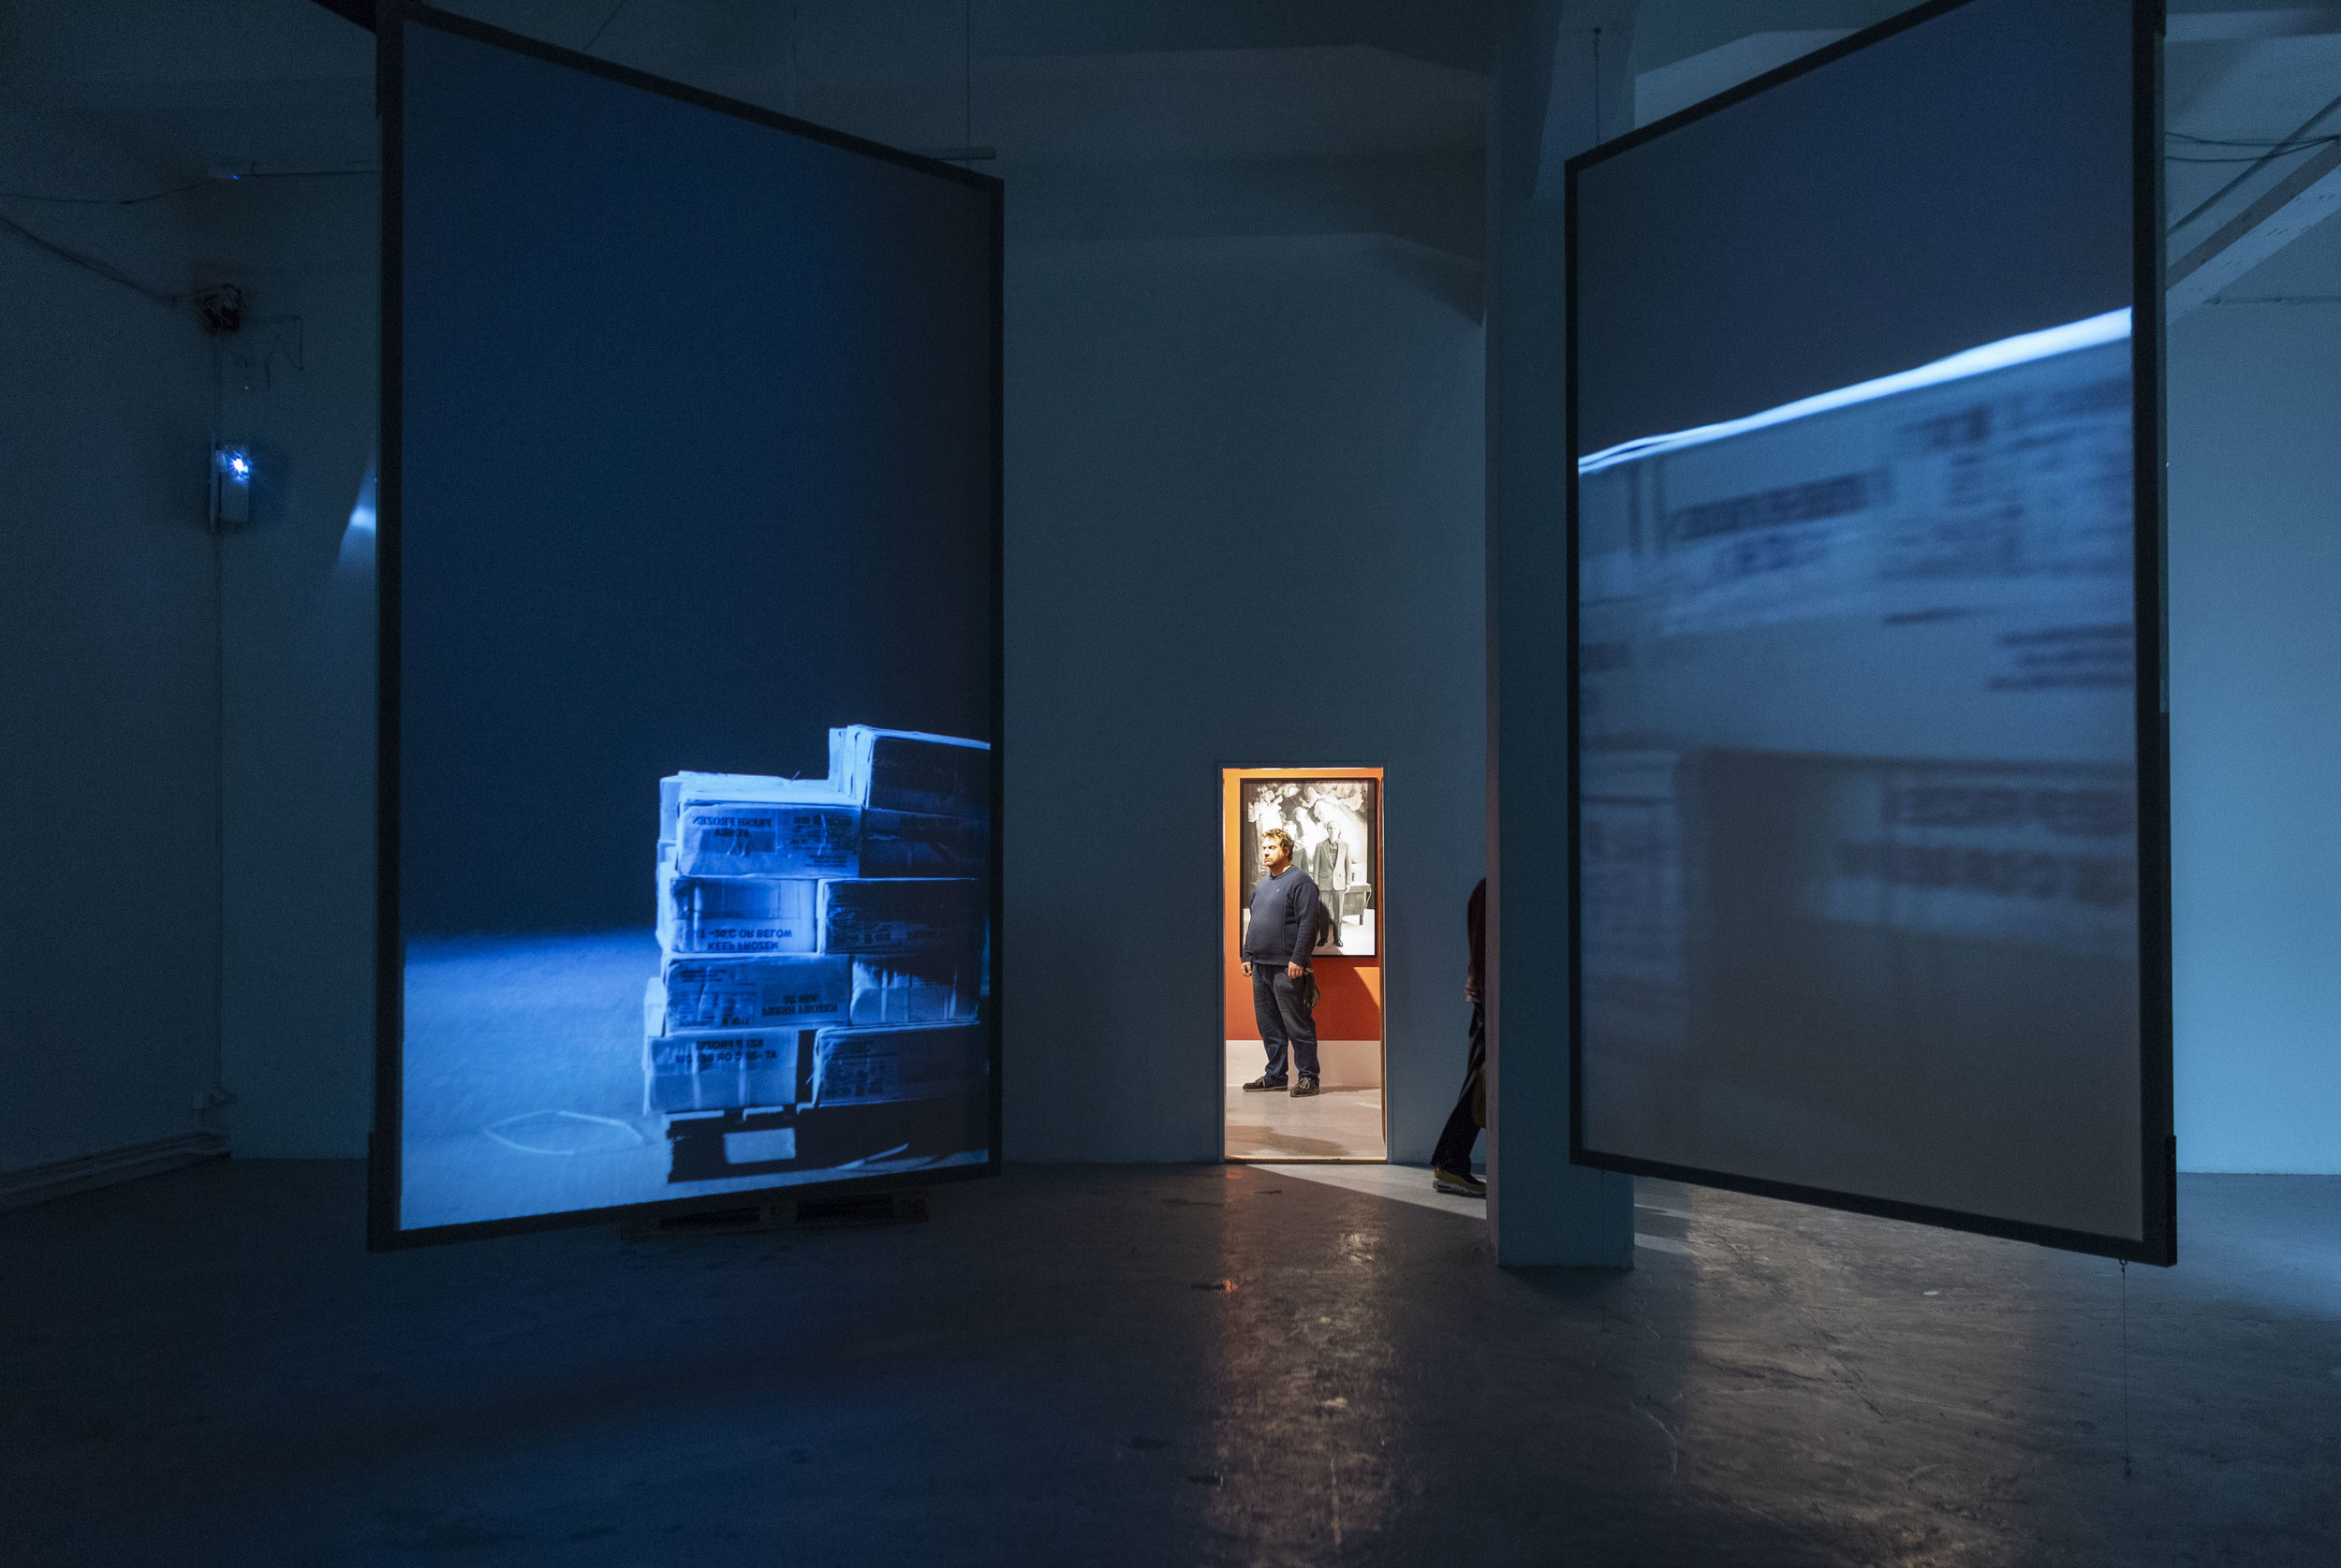 Installation view at the exhibition 'True Story' at Meetfactory, Prague in 2018.